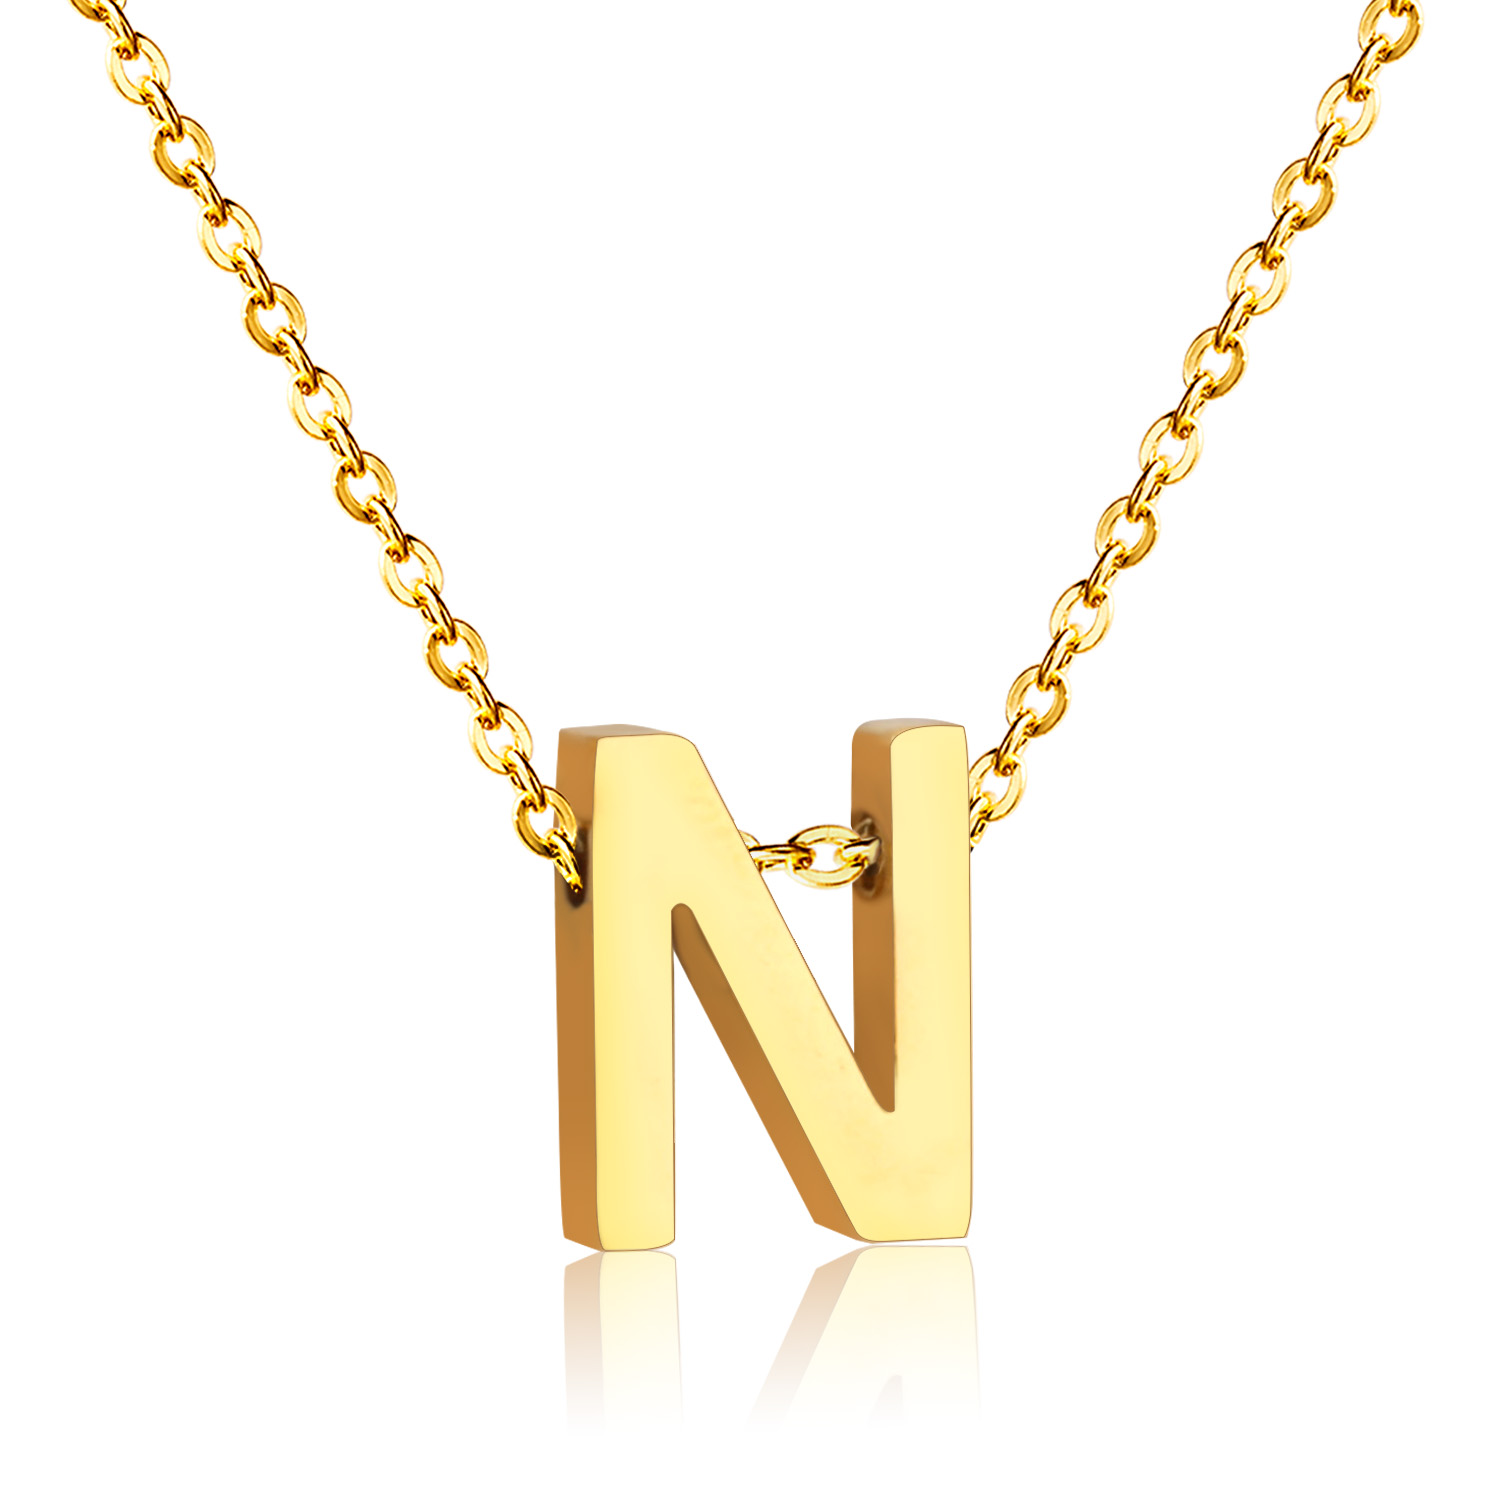 New Letter N Pendant Neclace(China)